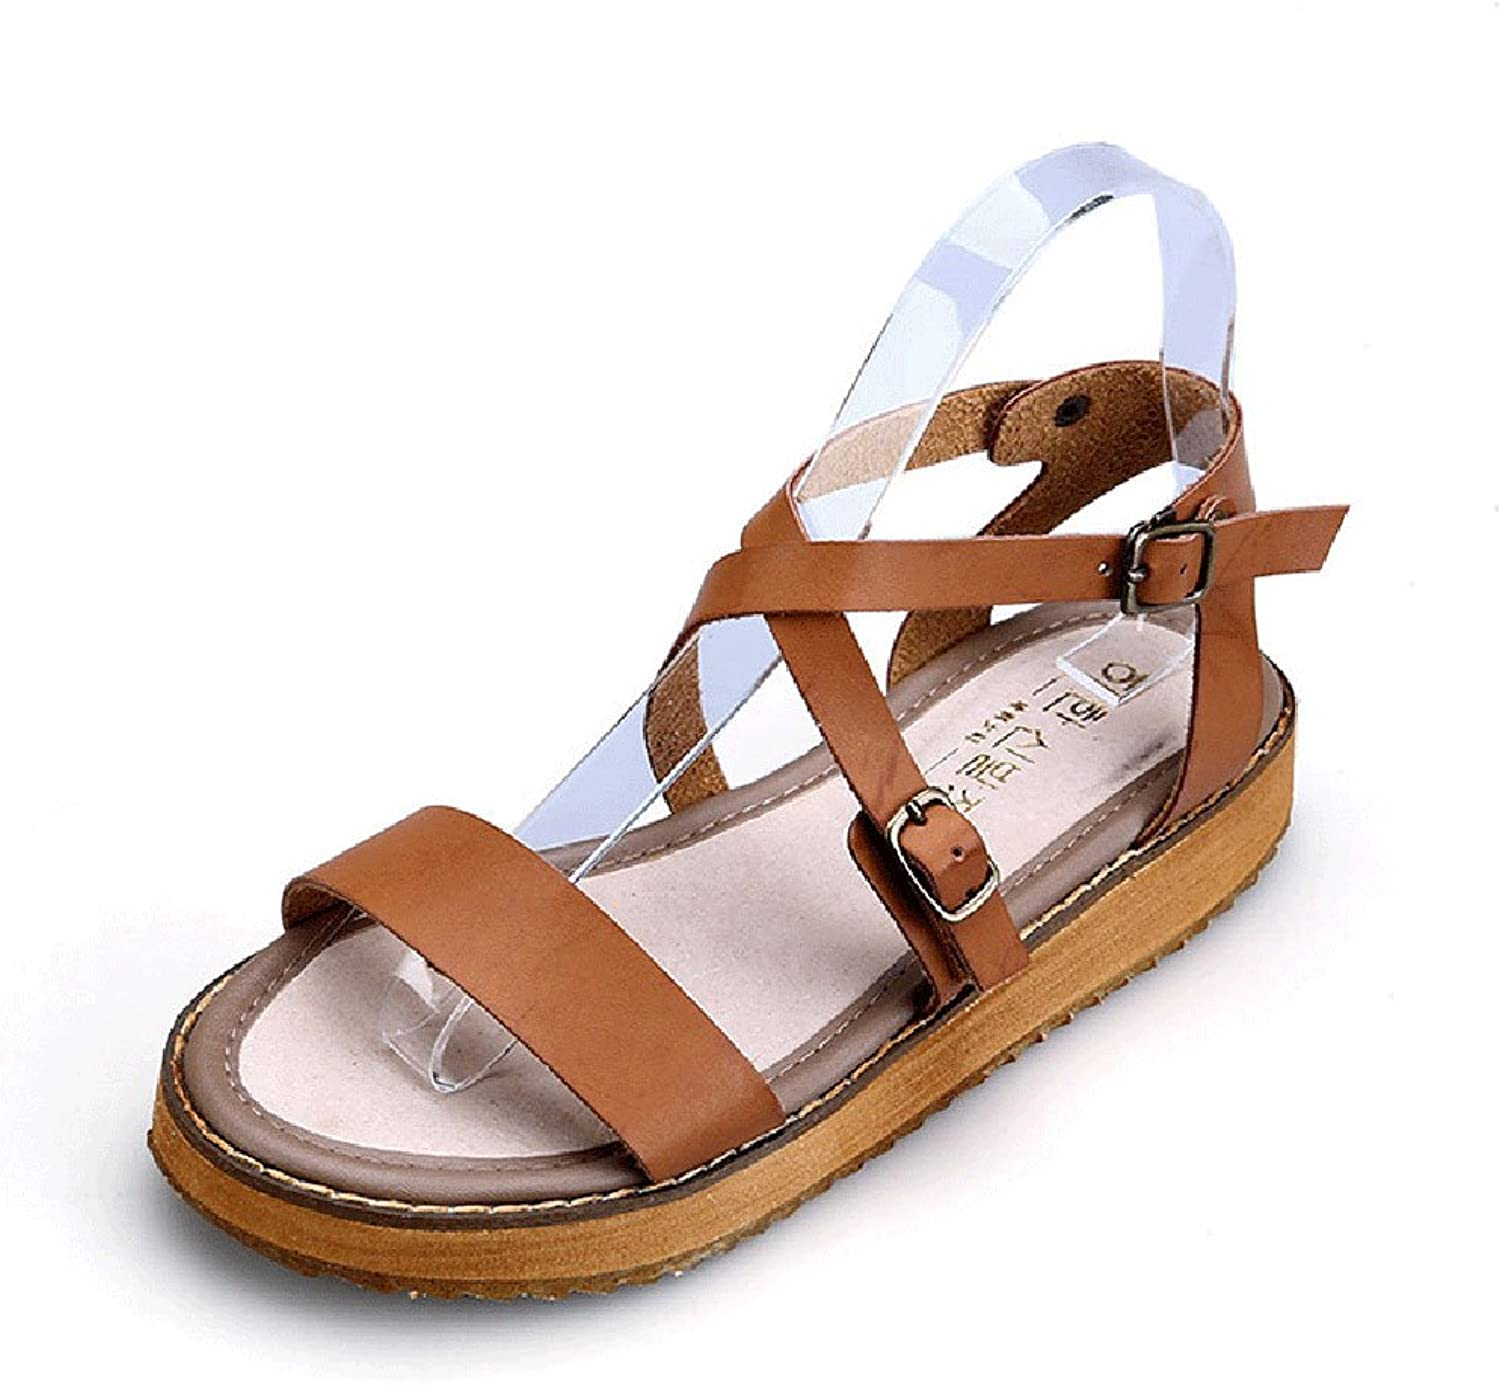 Fuoks Flat Leather Buckled Ankle Strap Summer Womens Sandals